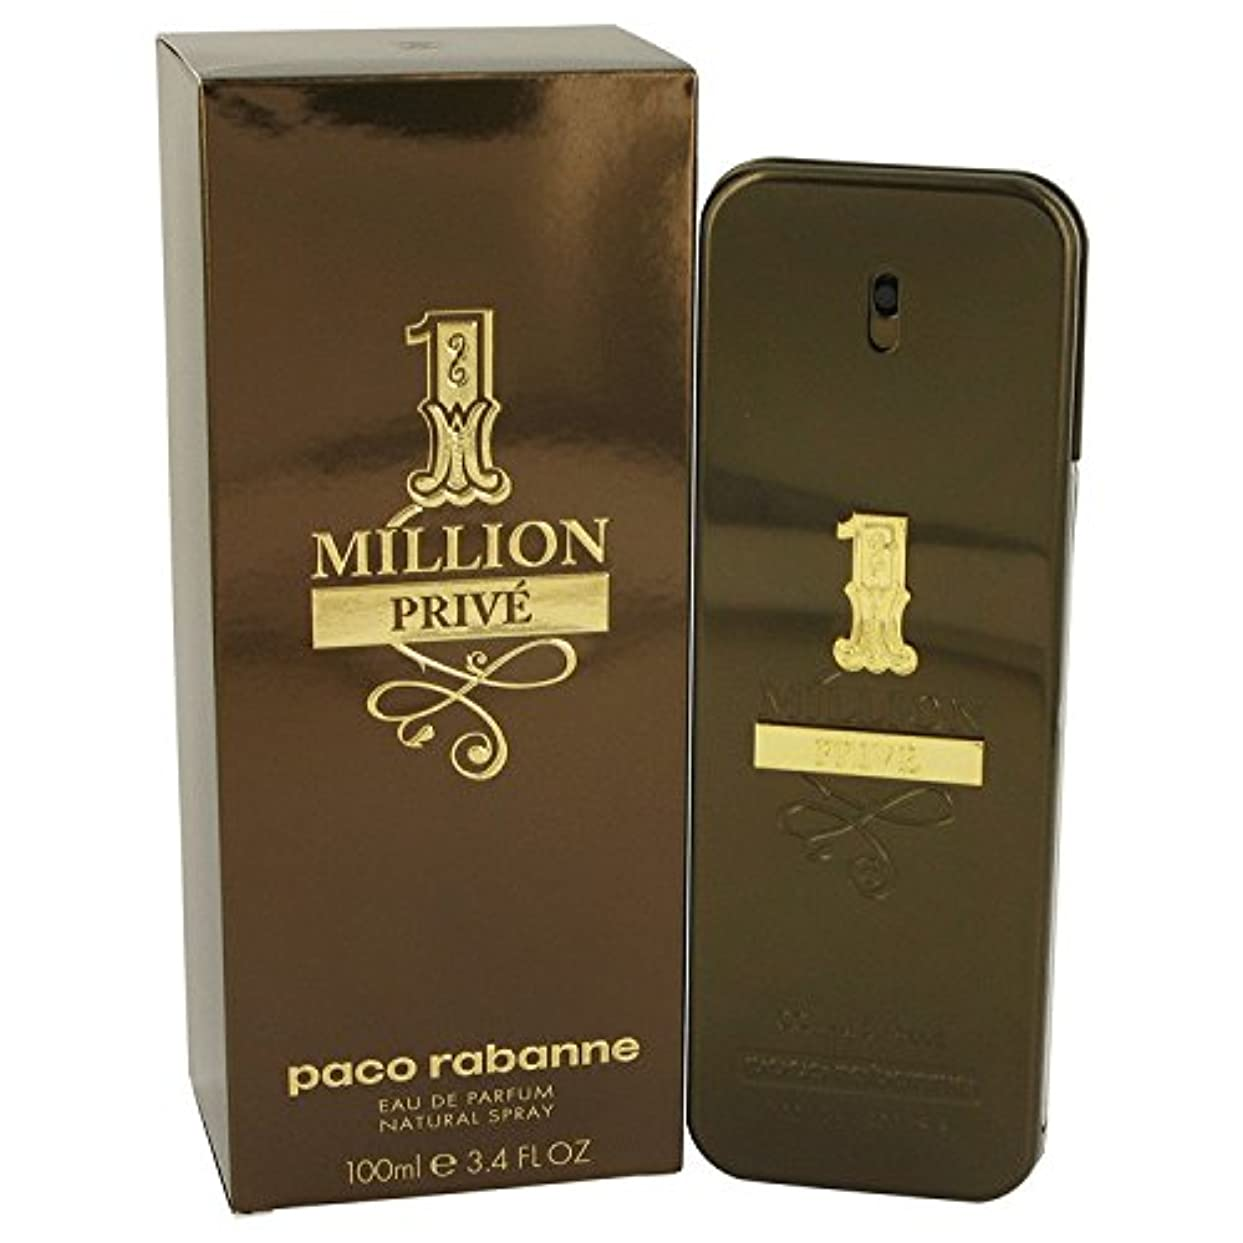 アヒル上げる寝てる1 Million Prive by Paco Rabanne Eau De Parfum Spray 100 ml [並行輸入品]